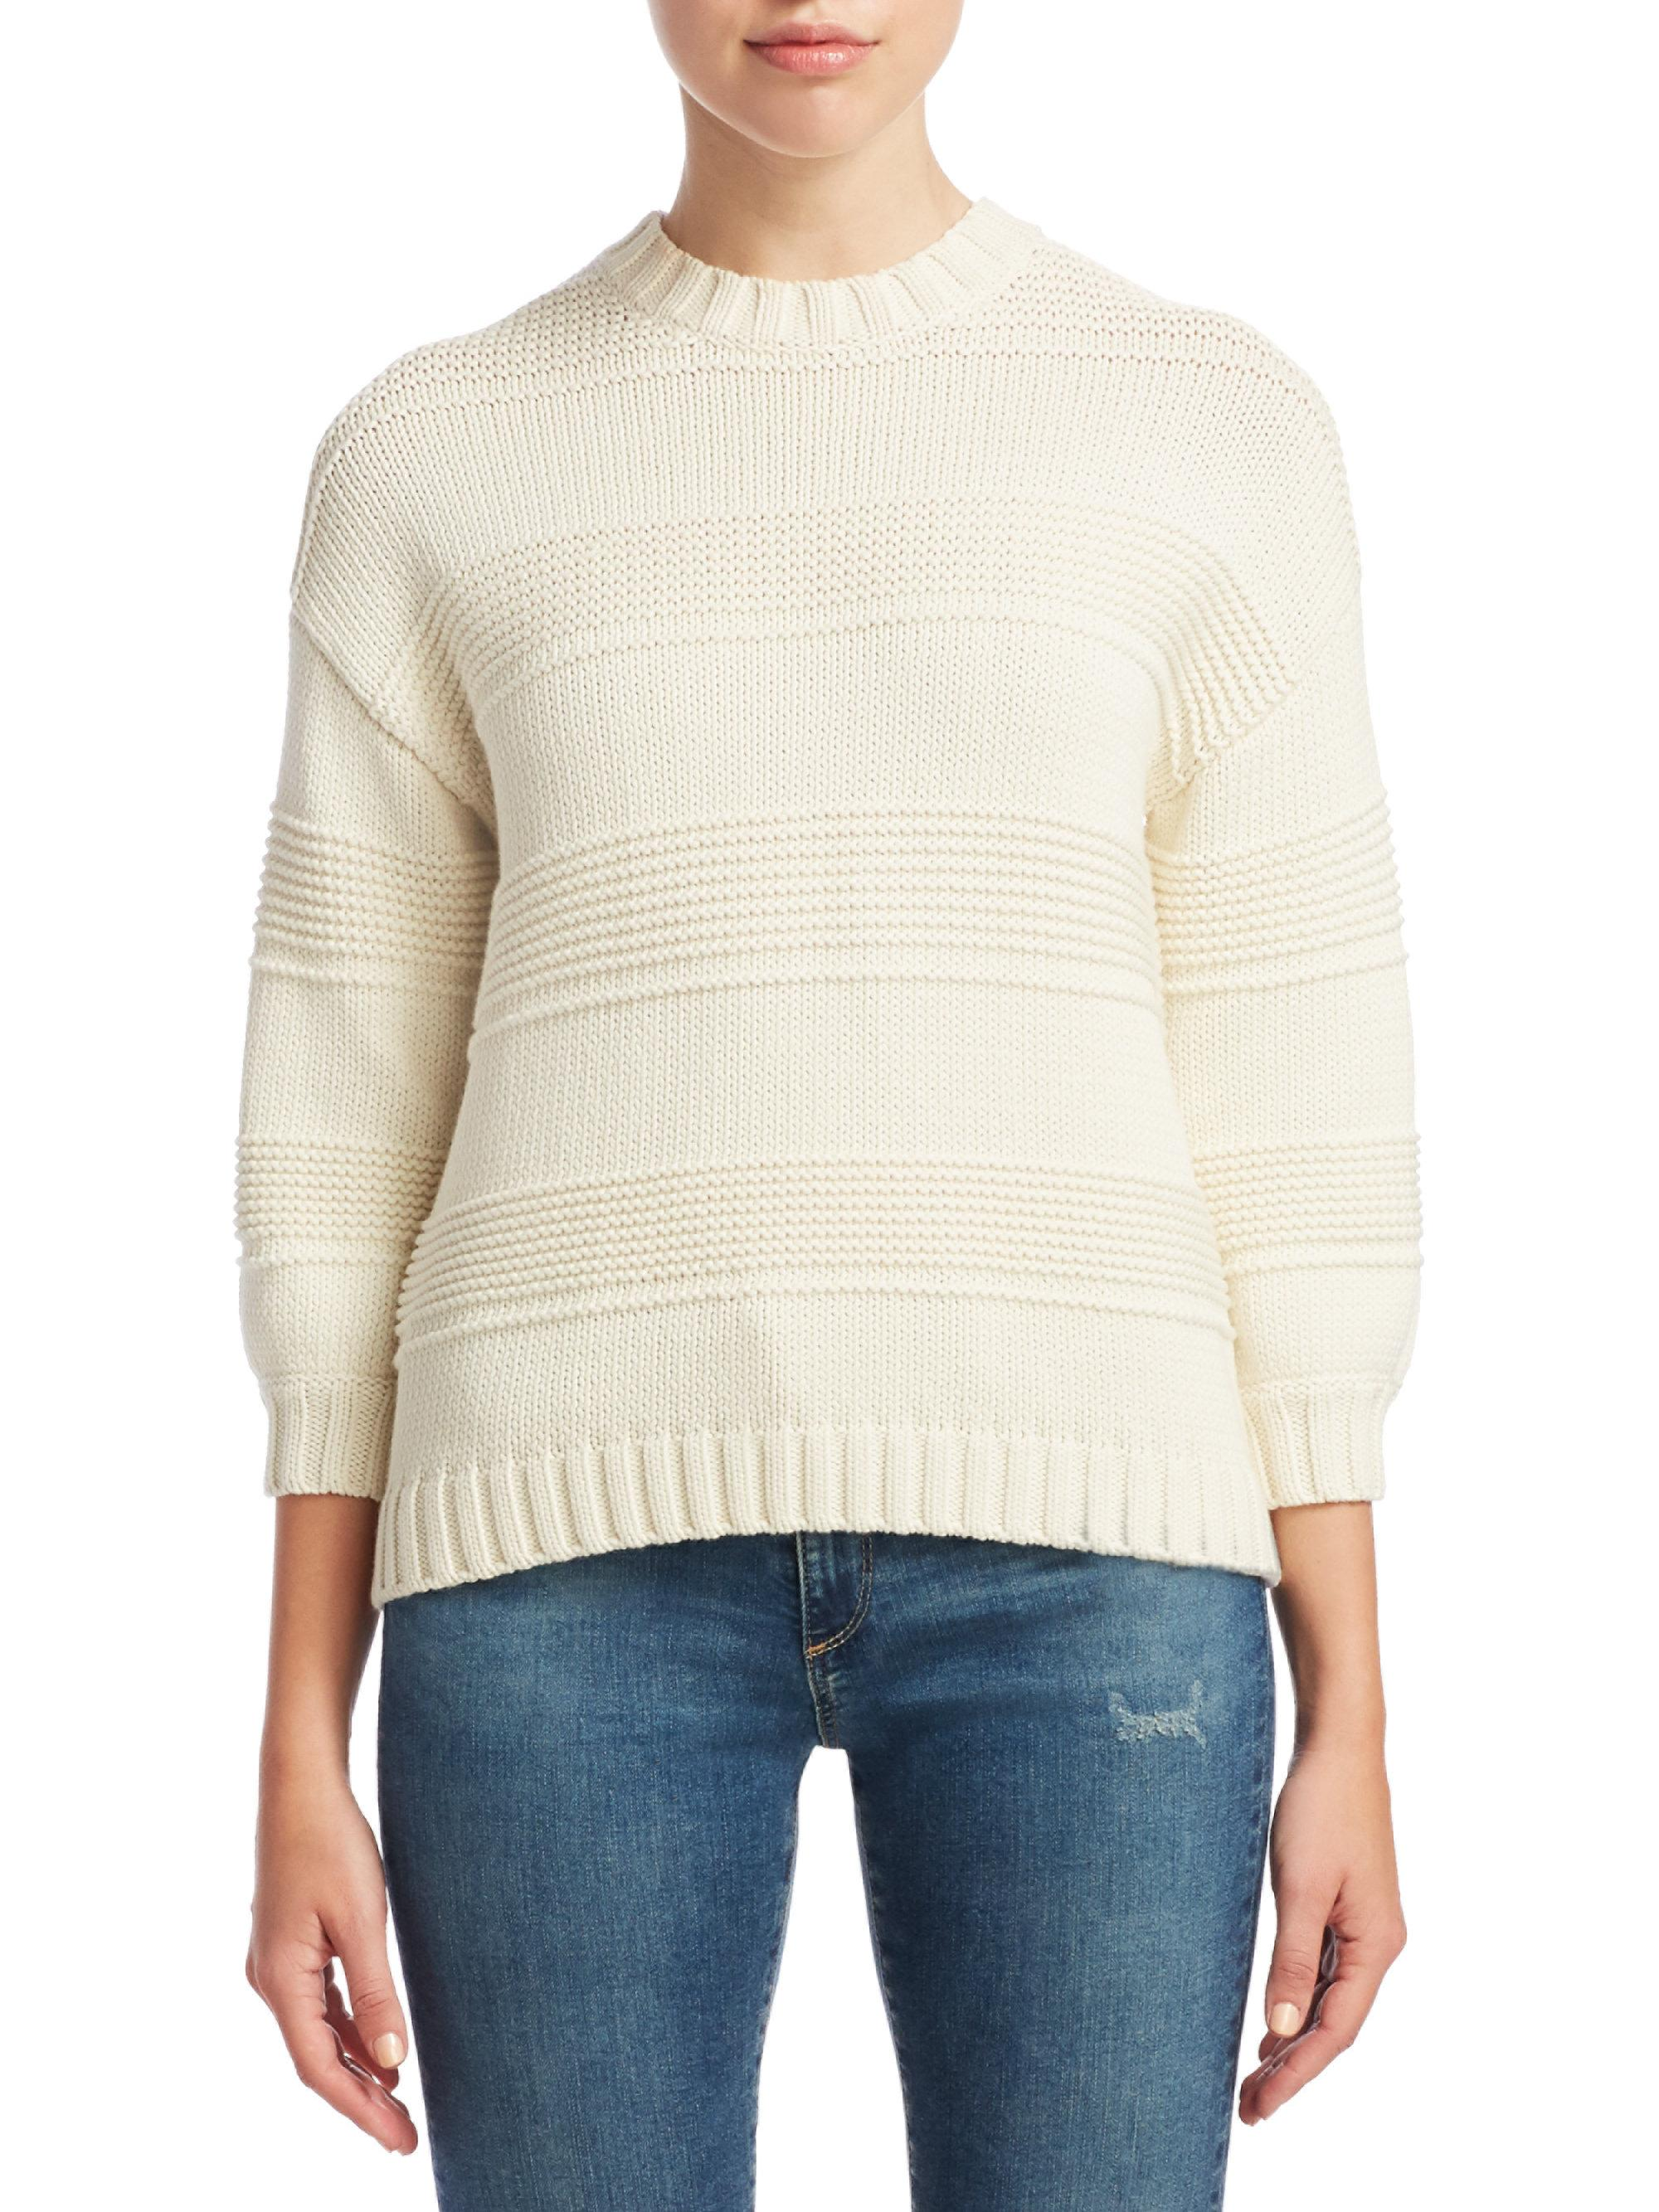 AG Jeans Sabrina Crew Neck Sweater